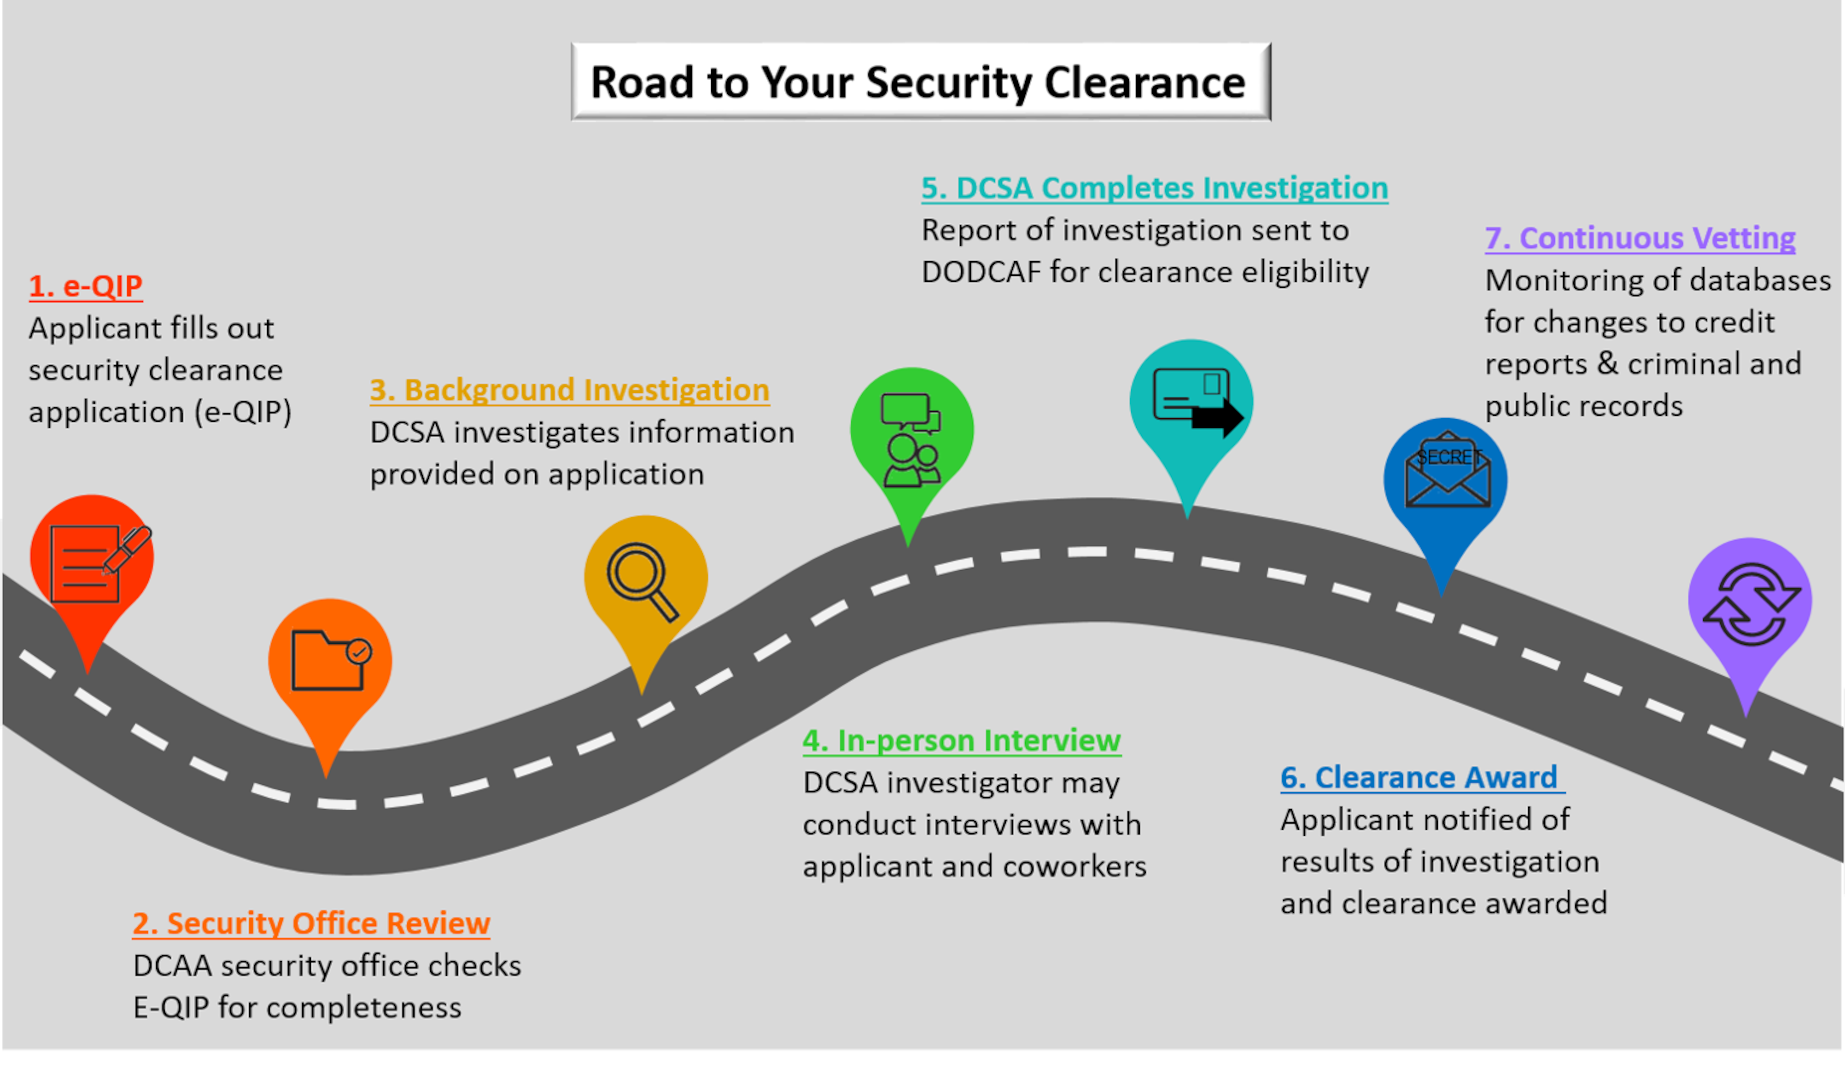 steps to get a security clearance